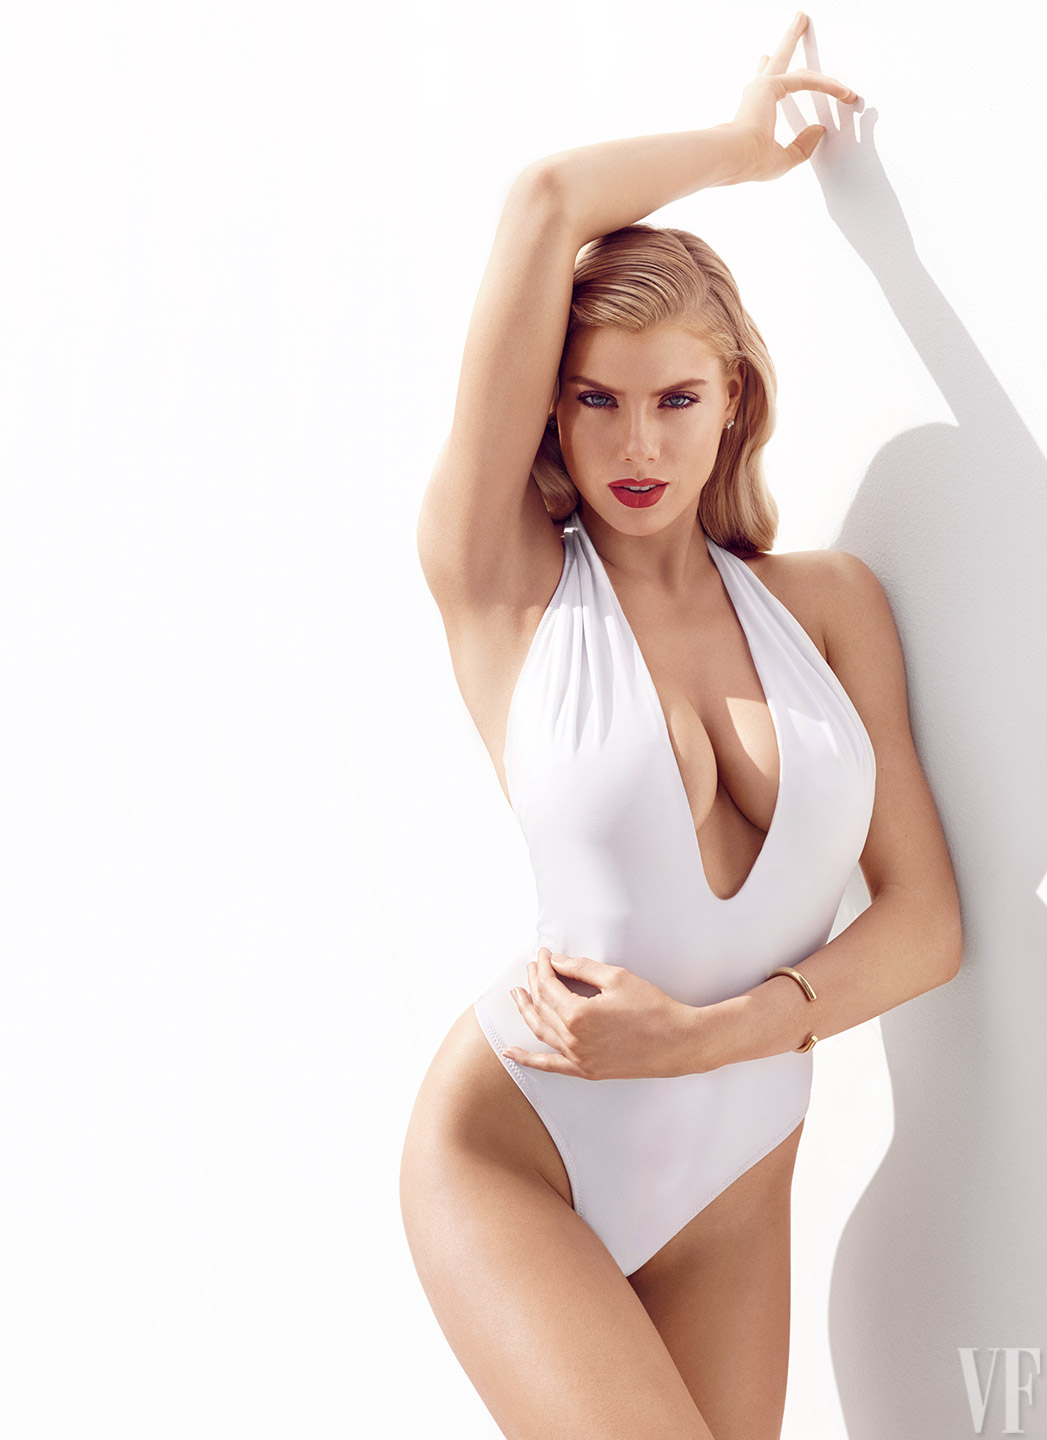 charlotte-mckinney-bikini-pics-are-so-hot-3